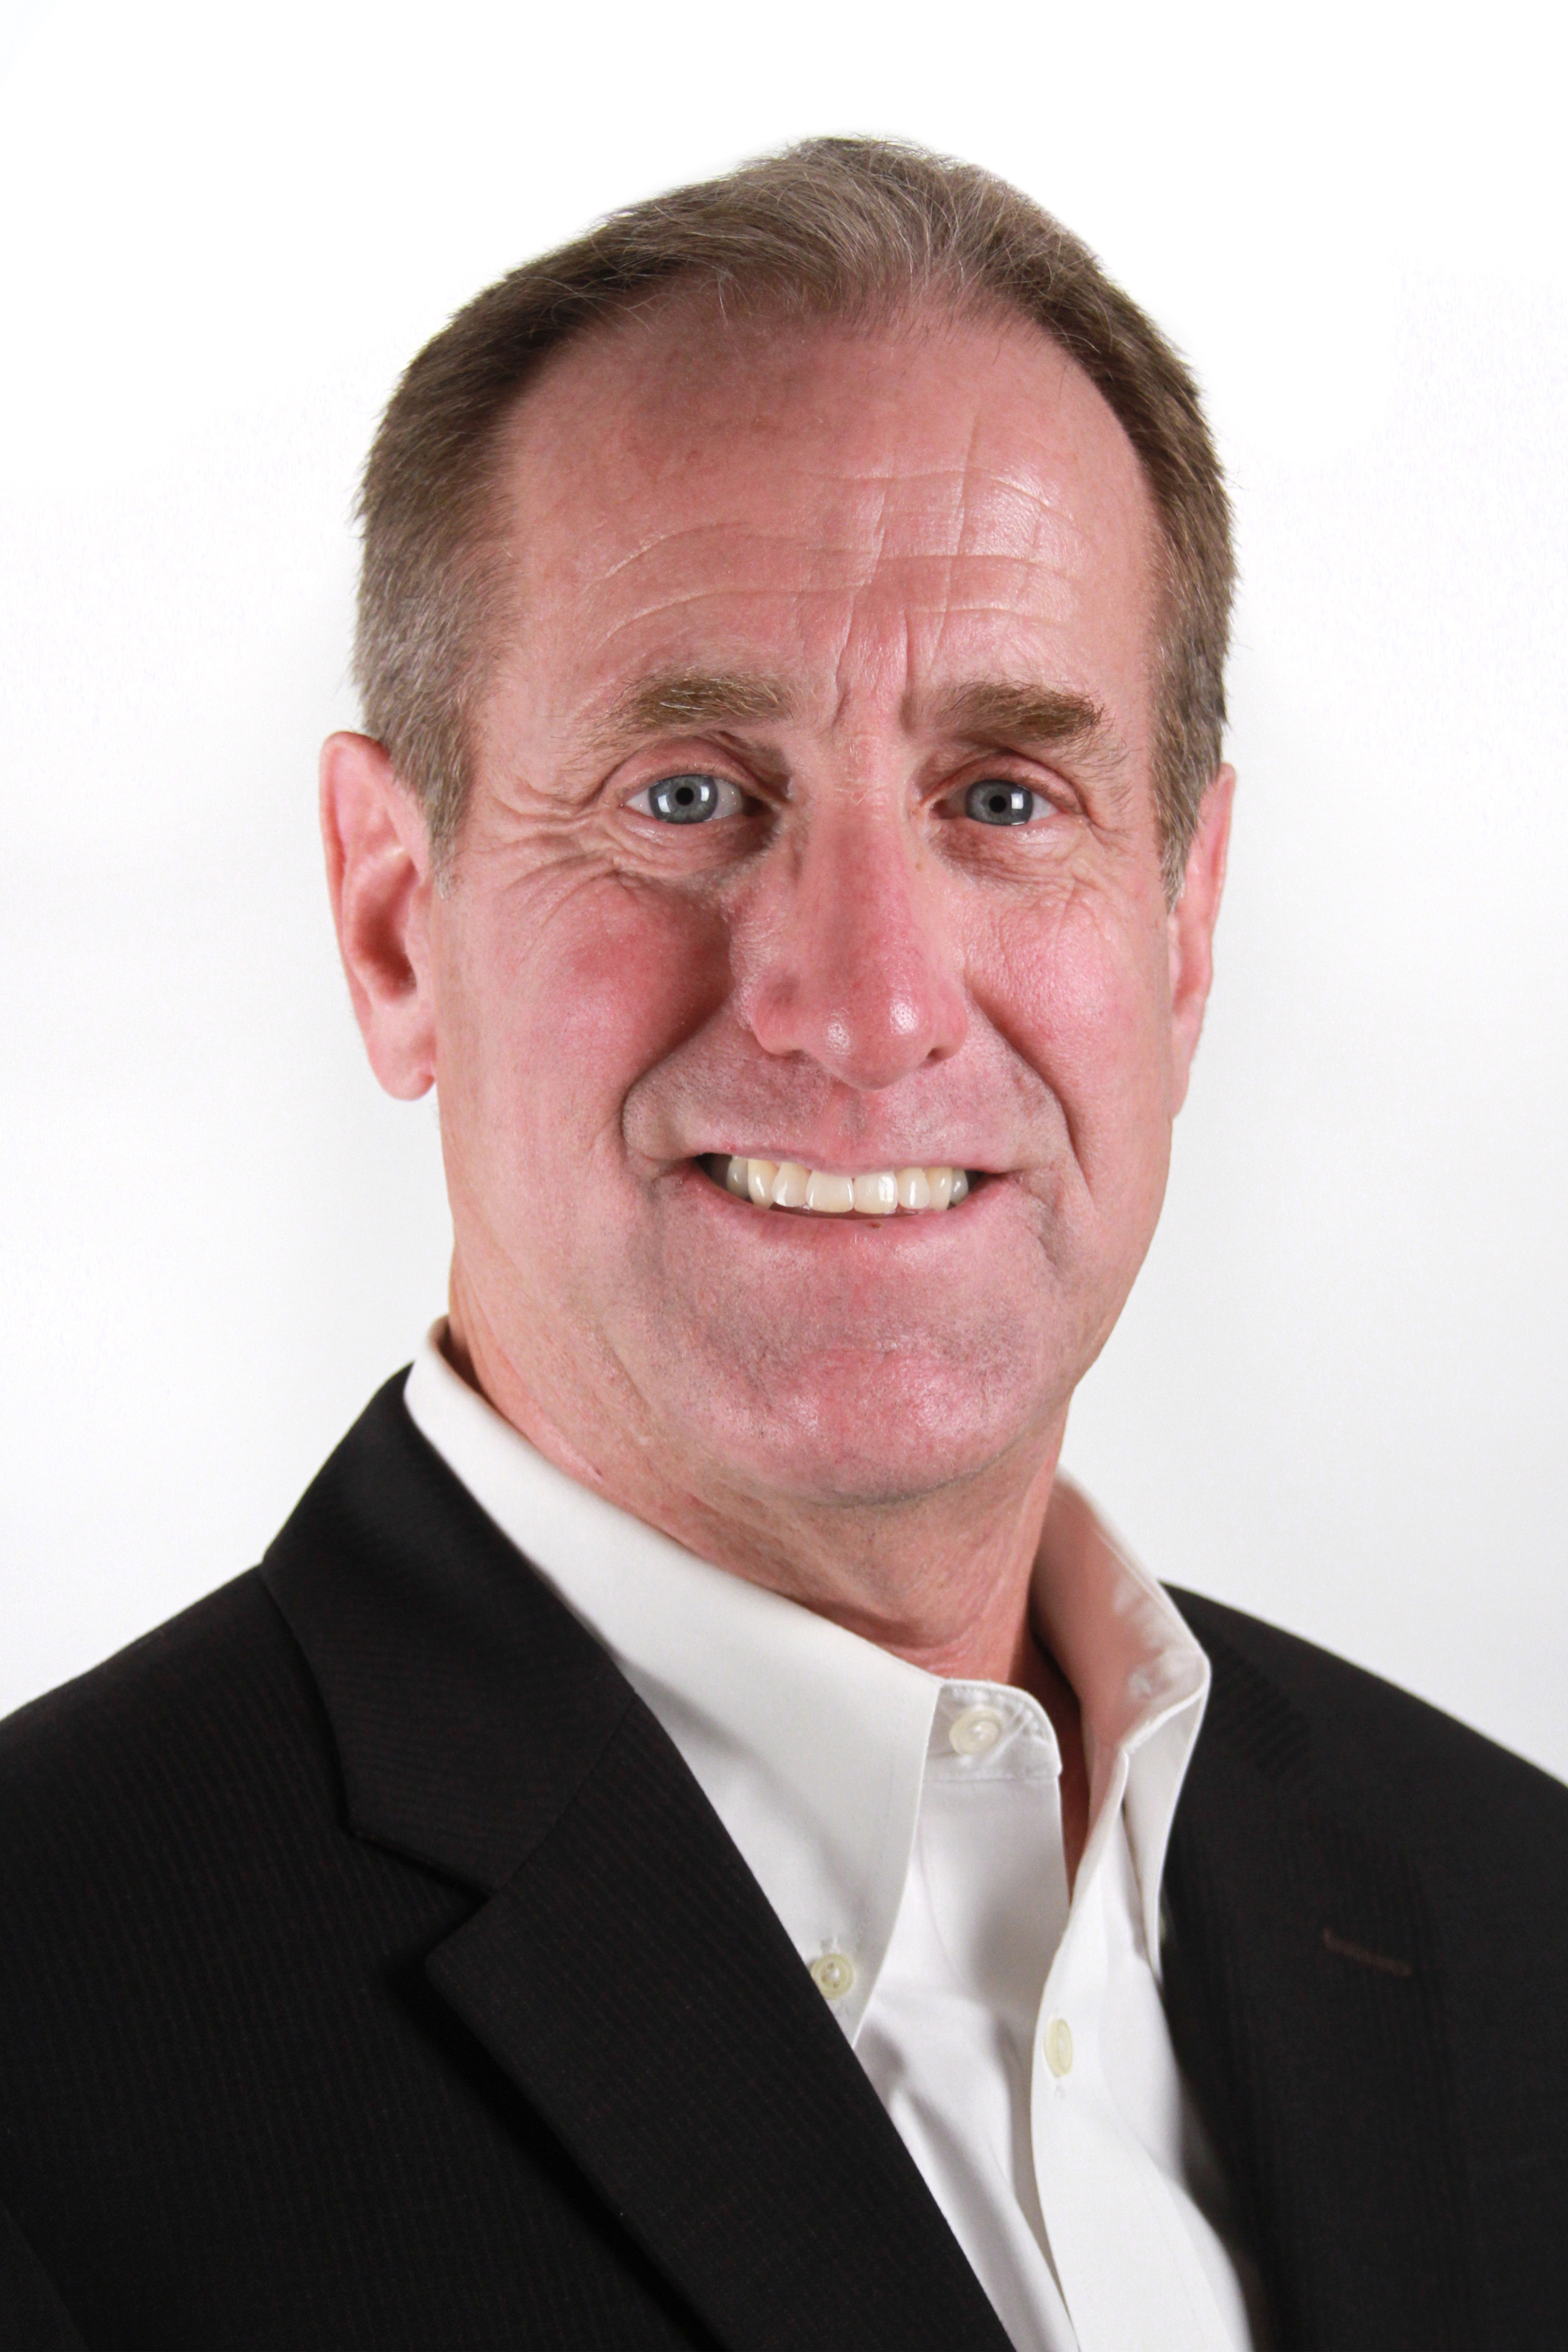 Dave Hickey, Chief Customer Officer (Photo: Business Wire).